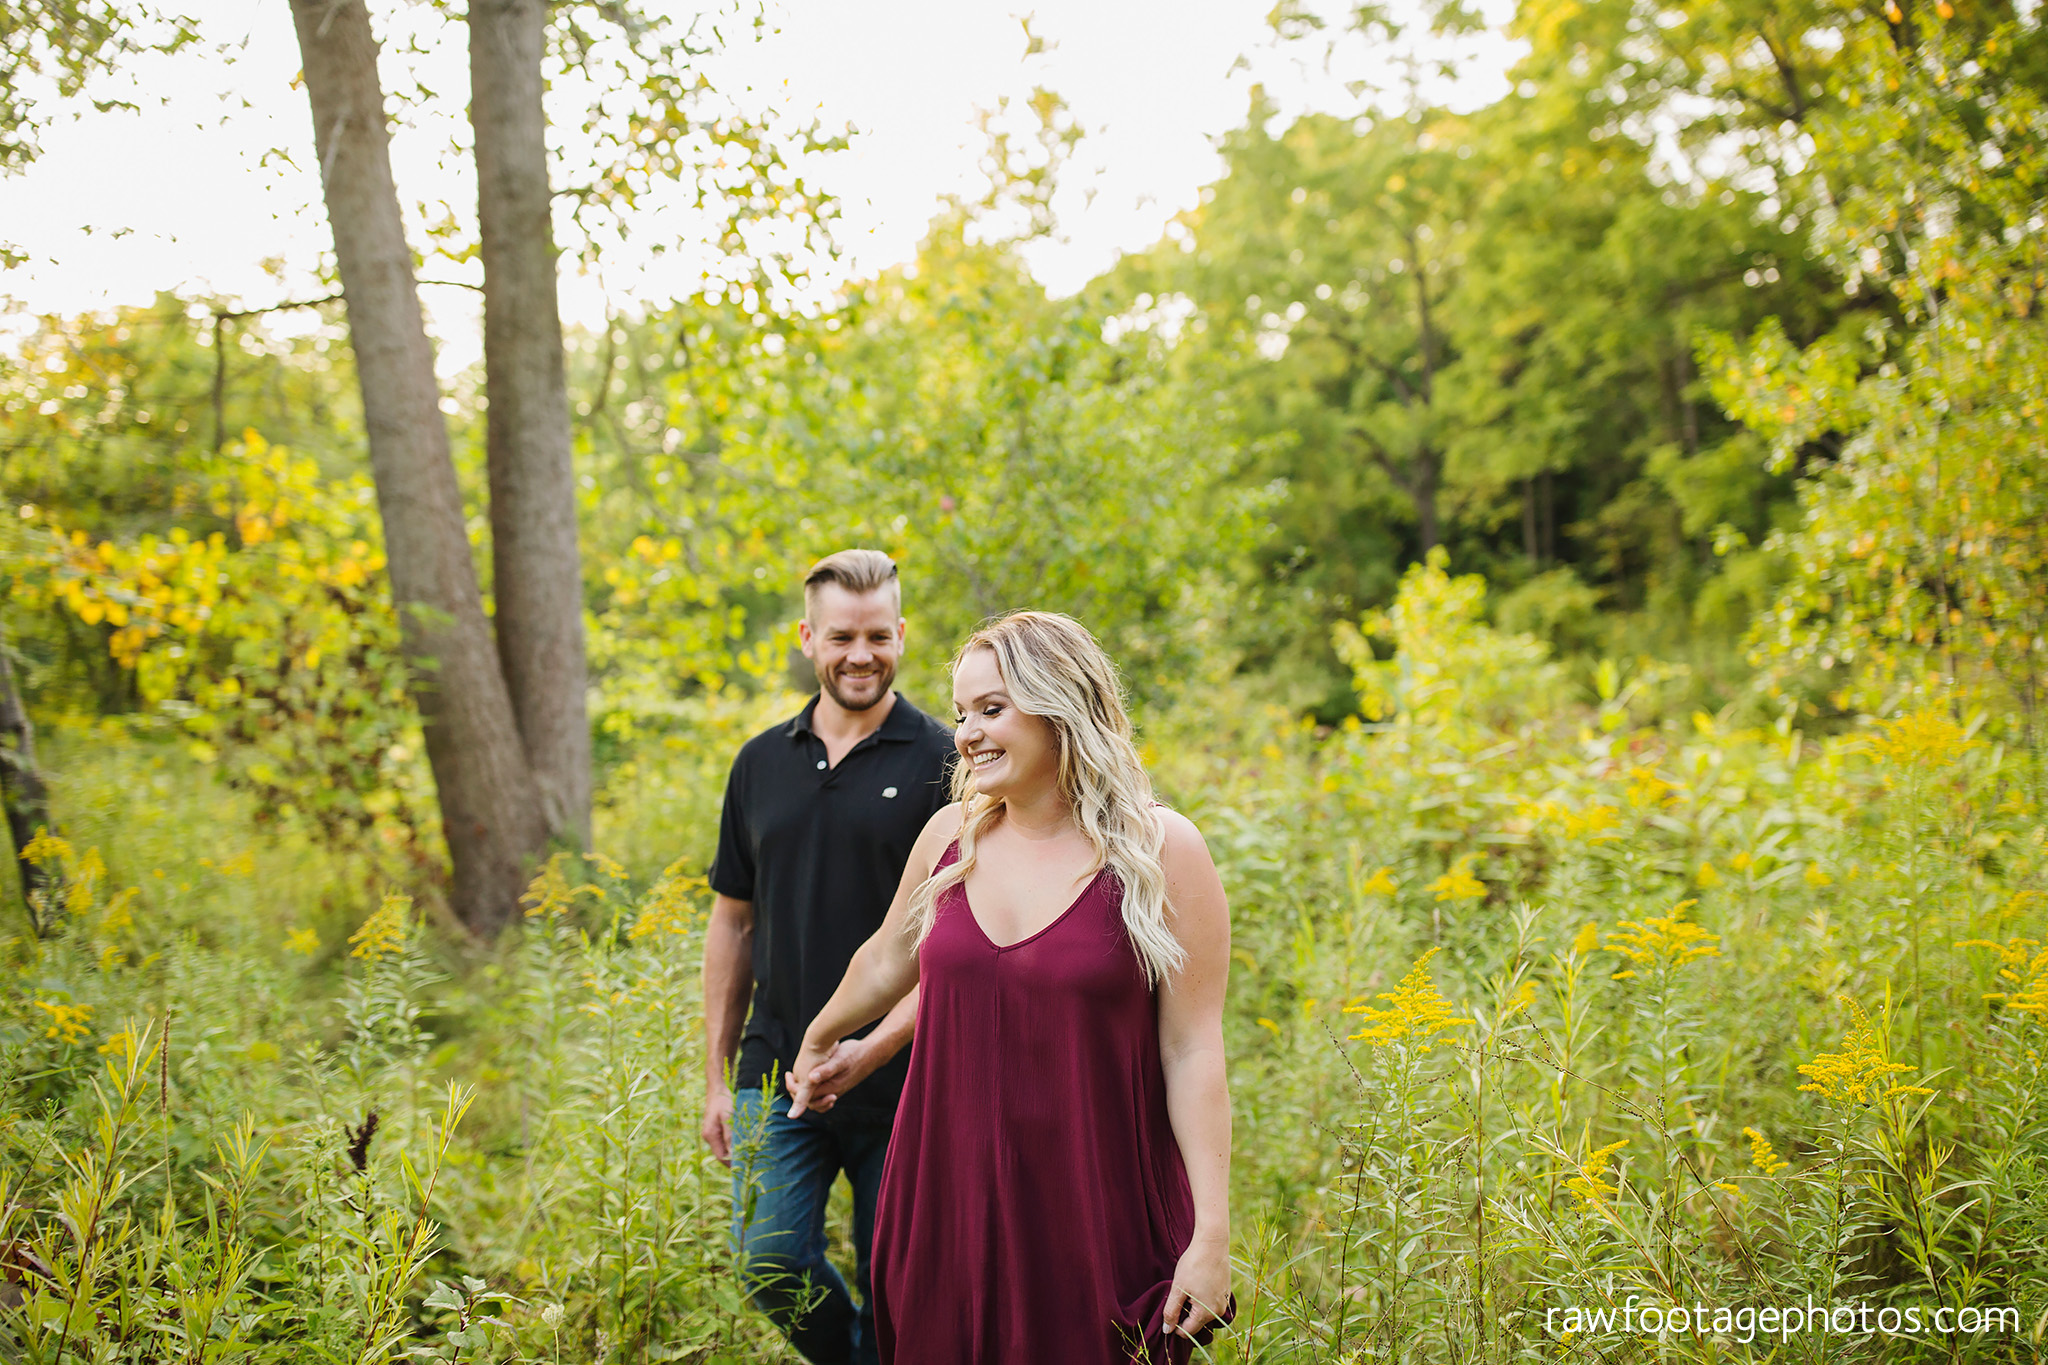 london_ontario_wedding_photographer-woodsy_engagement_session-e_session-engagement_photos-medway_creek-medway_heritage_forest-raw_forest_photography021.jpg